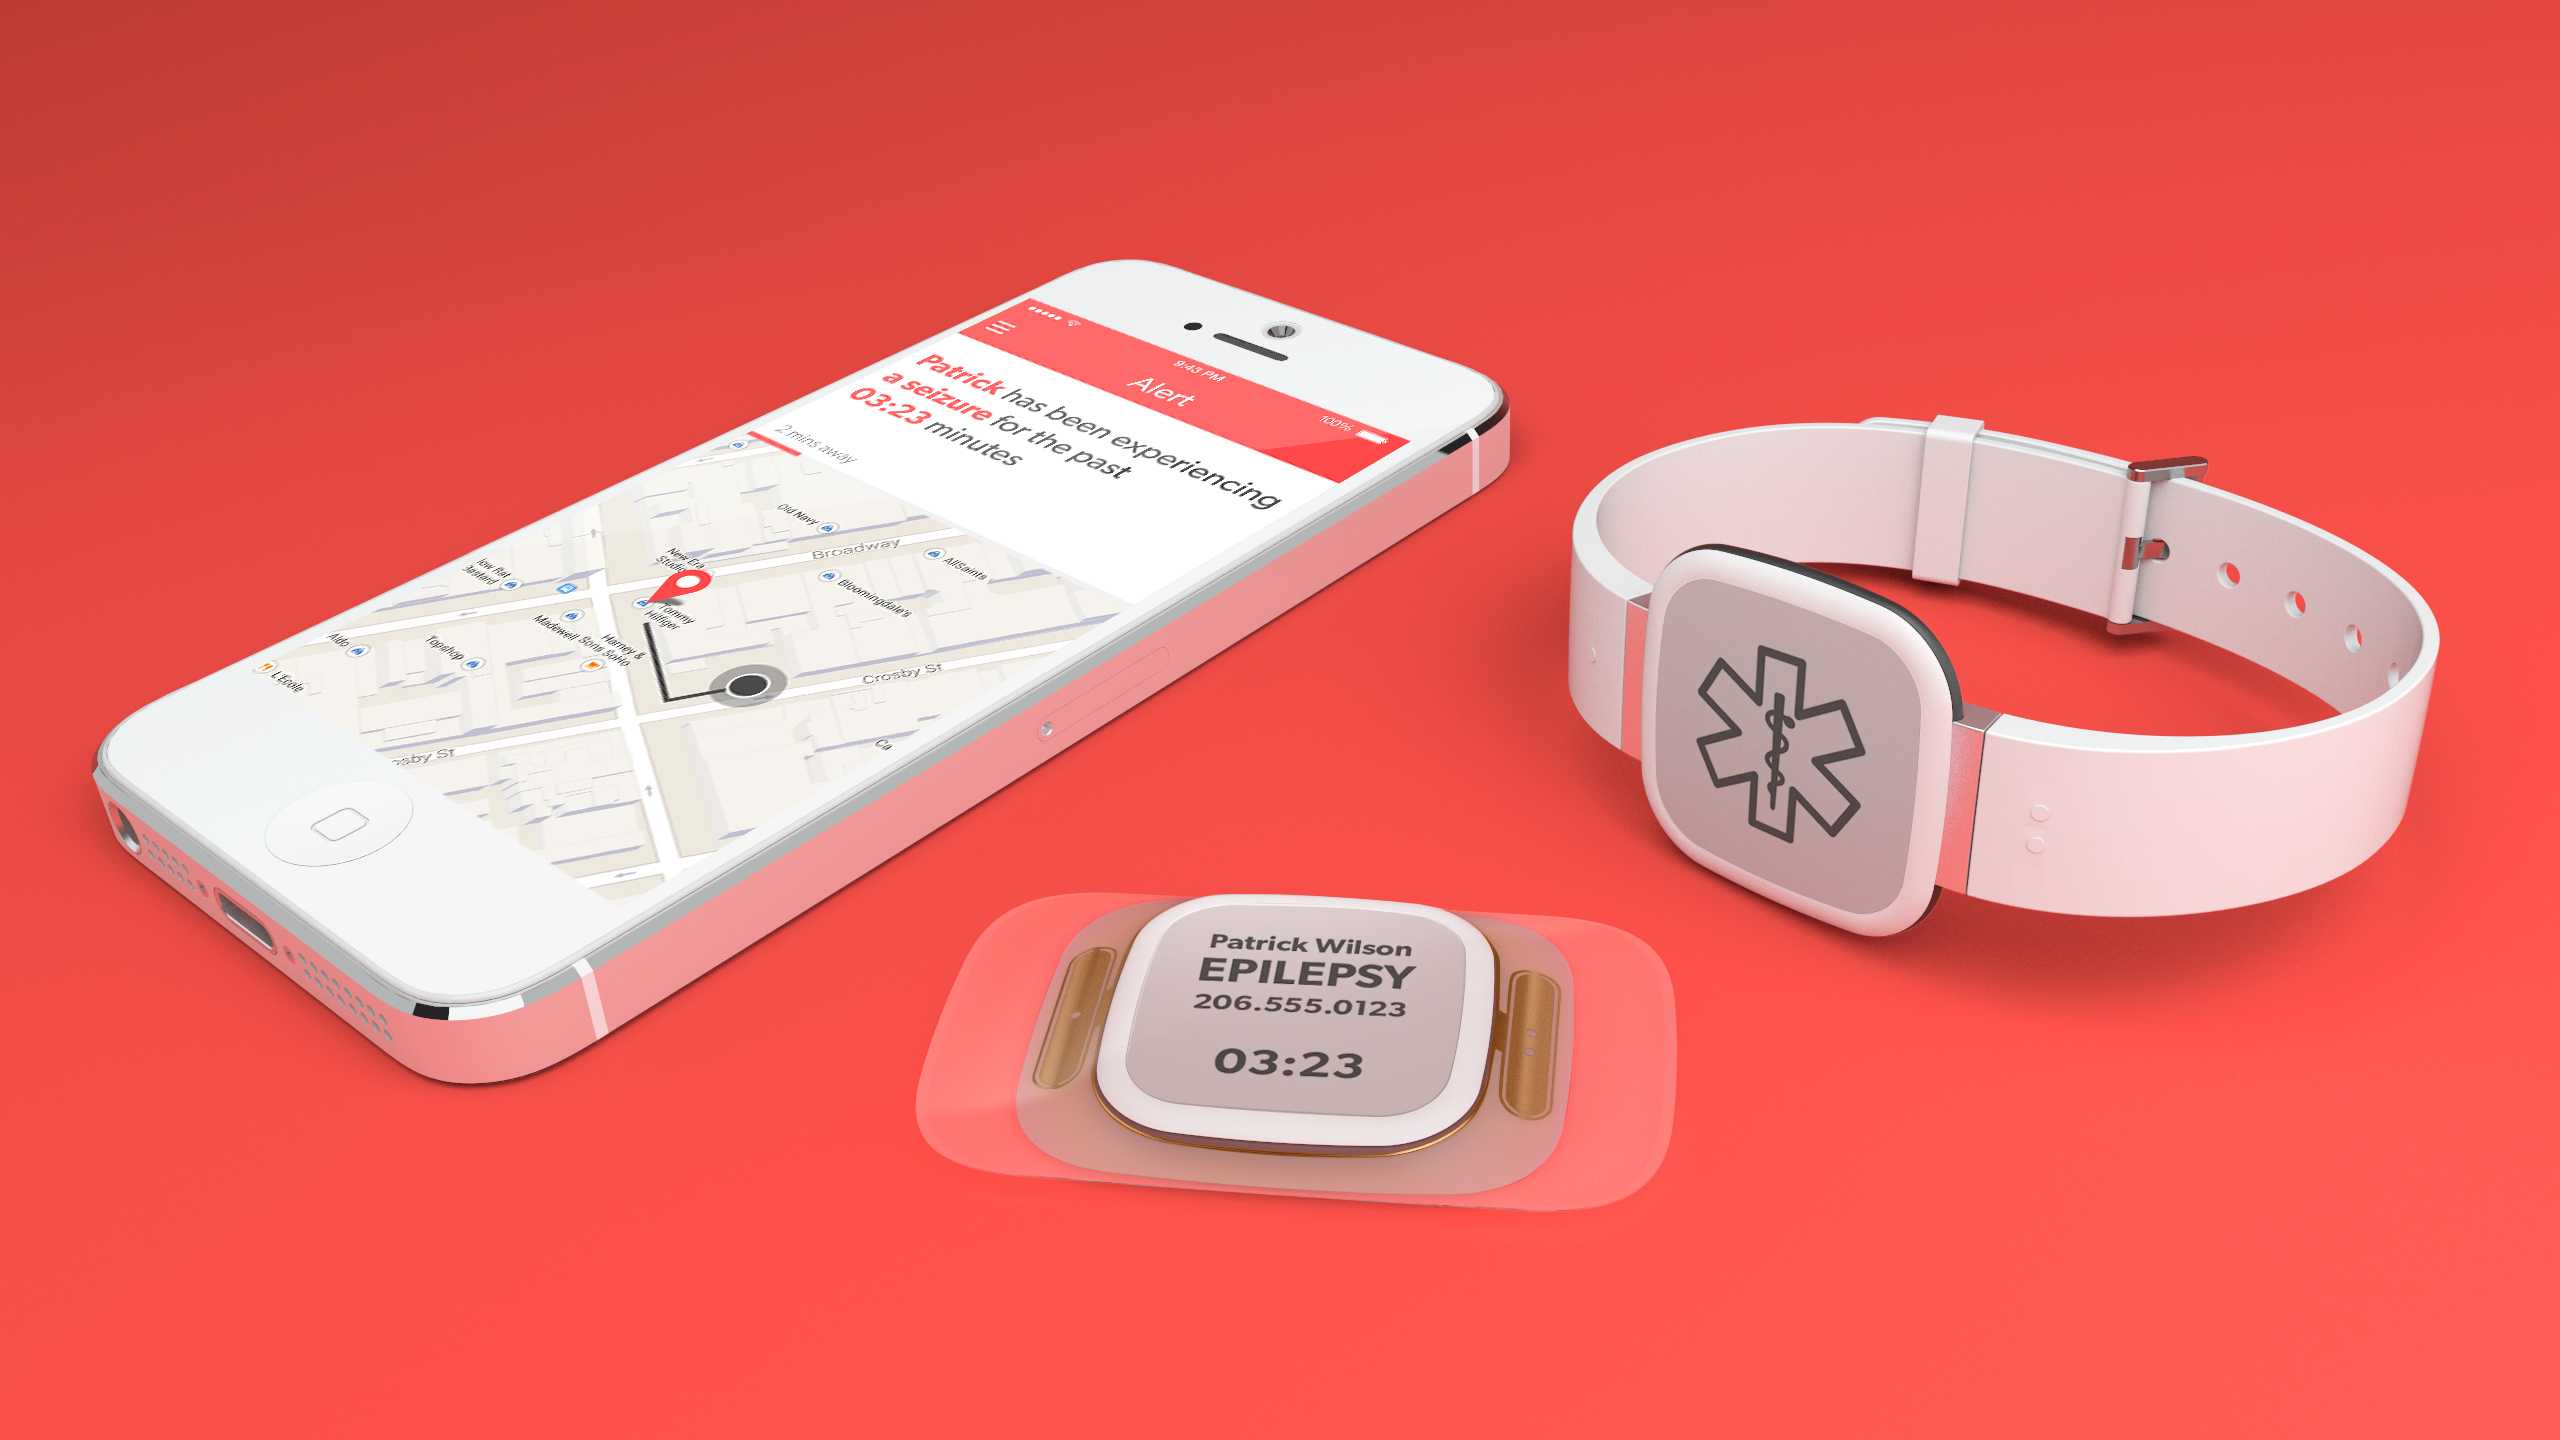 Wearables Sweet Sixteen: A device to evaluate gait vs. seizure alert and tracker